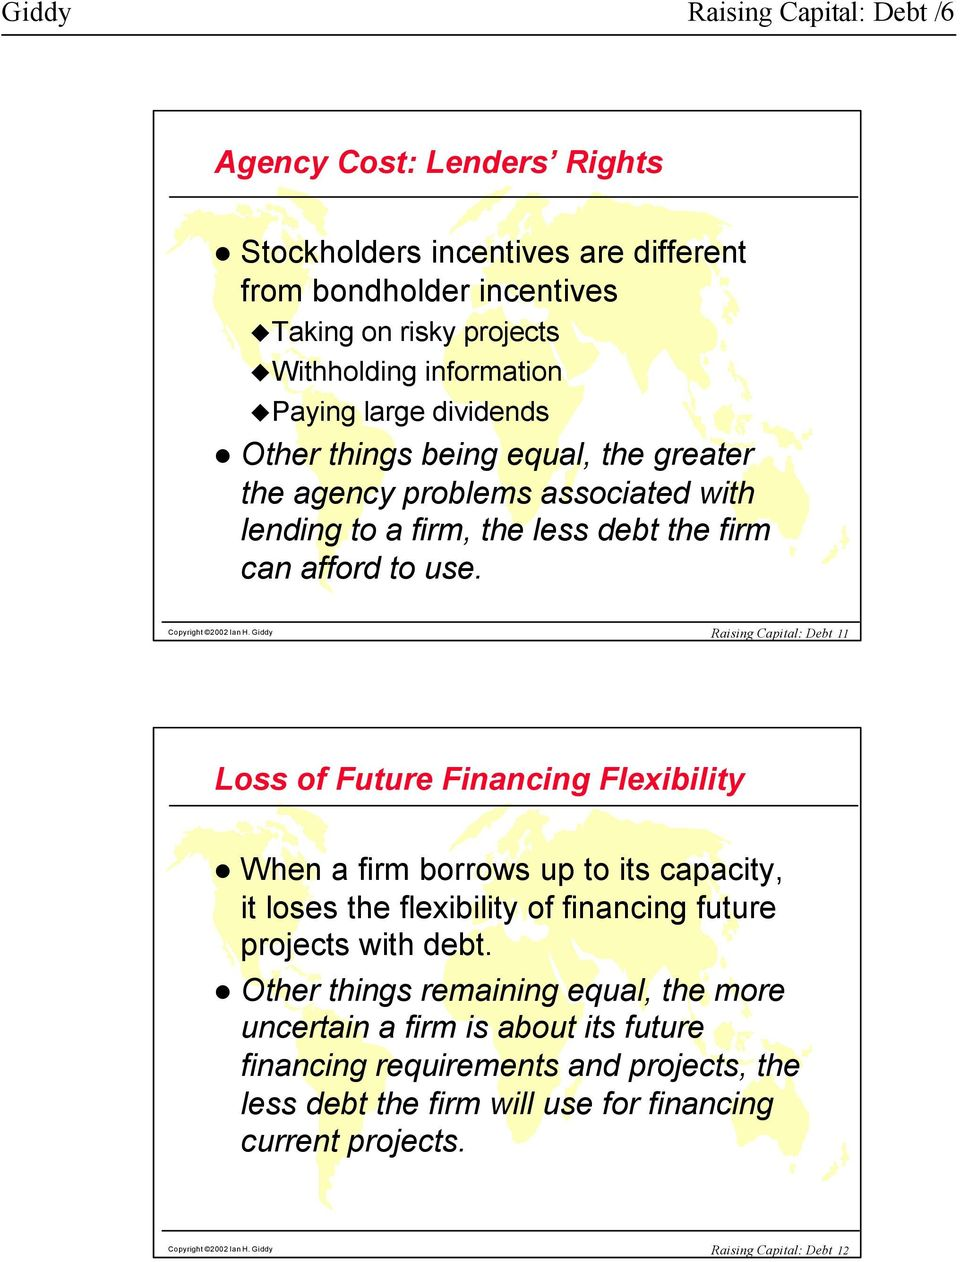 Giddy Raising Capital: Debt 11 Loss of Future Financing Flexibility When a firm borrows up to its capacity, it loses the flexibility of financing future projects with debt.